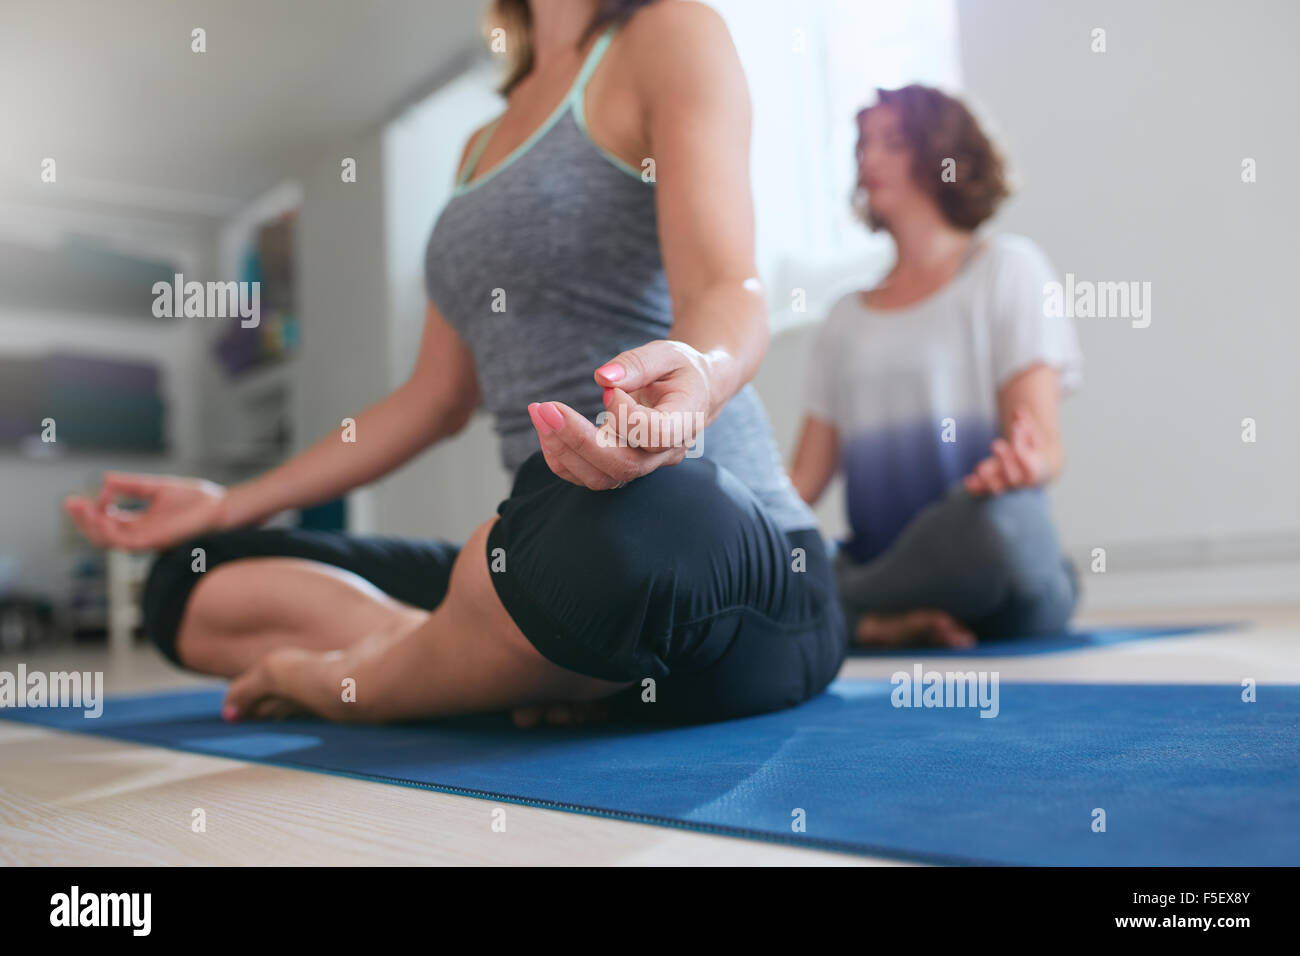 Women sitting on exercise mat with legs crossed and hands on knees. Female meditating in lotus pose at yoga class, - Stock Image